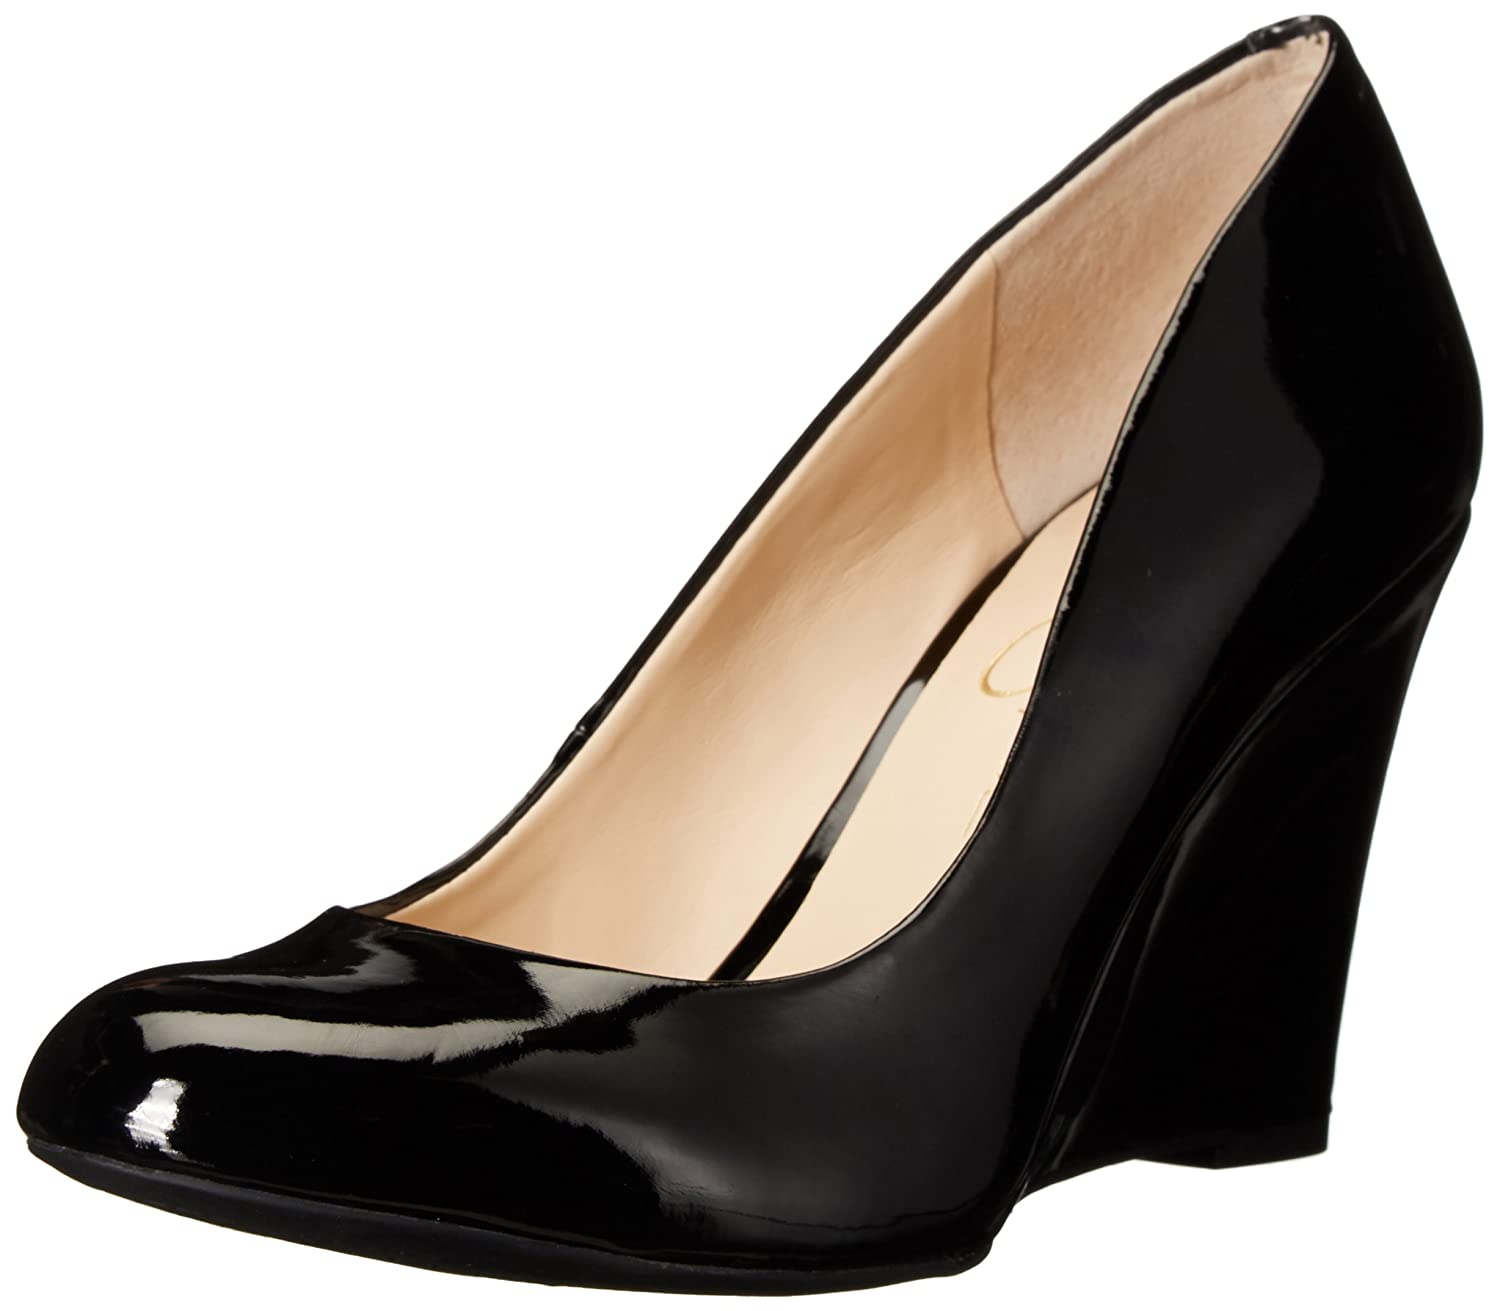 Black Patent Jessica Simpson Women's Cash Wedge Pump